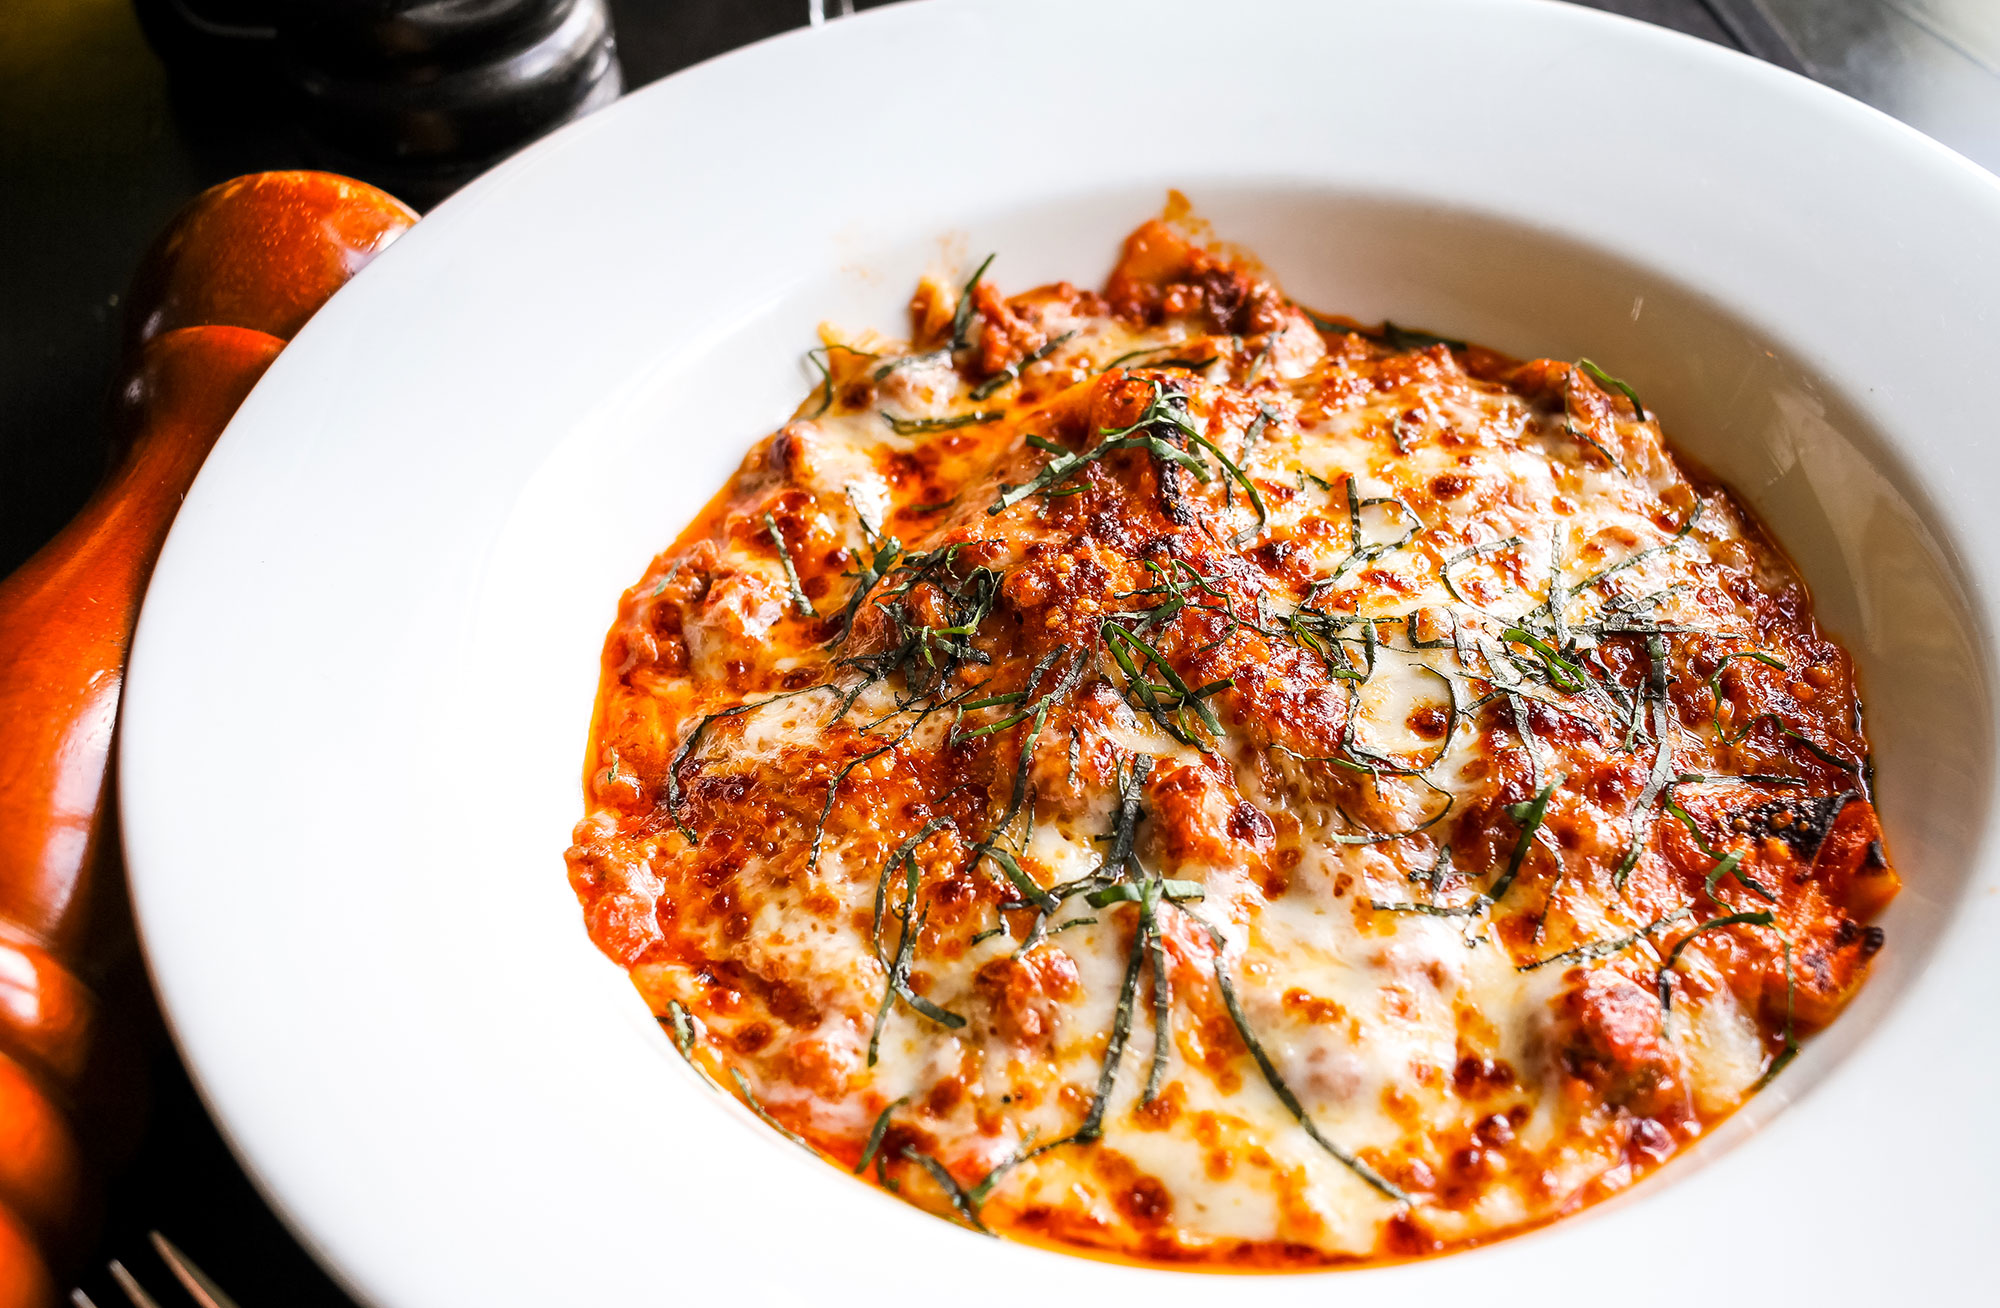 The lasagna matta at Campagnolo in Midtown Atlanta is covered in a thick crust of mozzarella cheese and swimming in tangy red sauce.